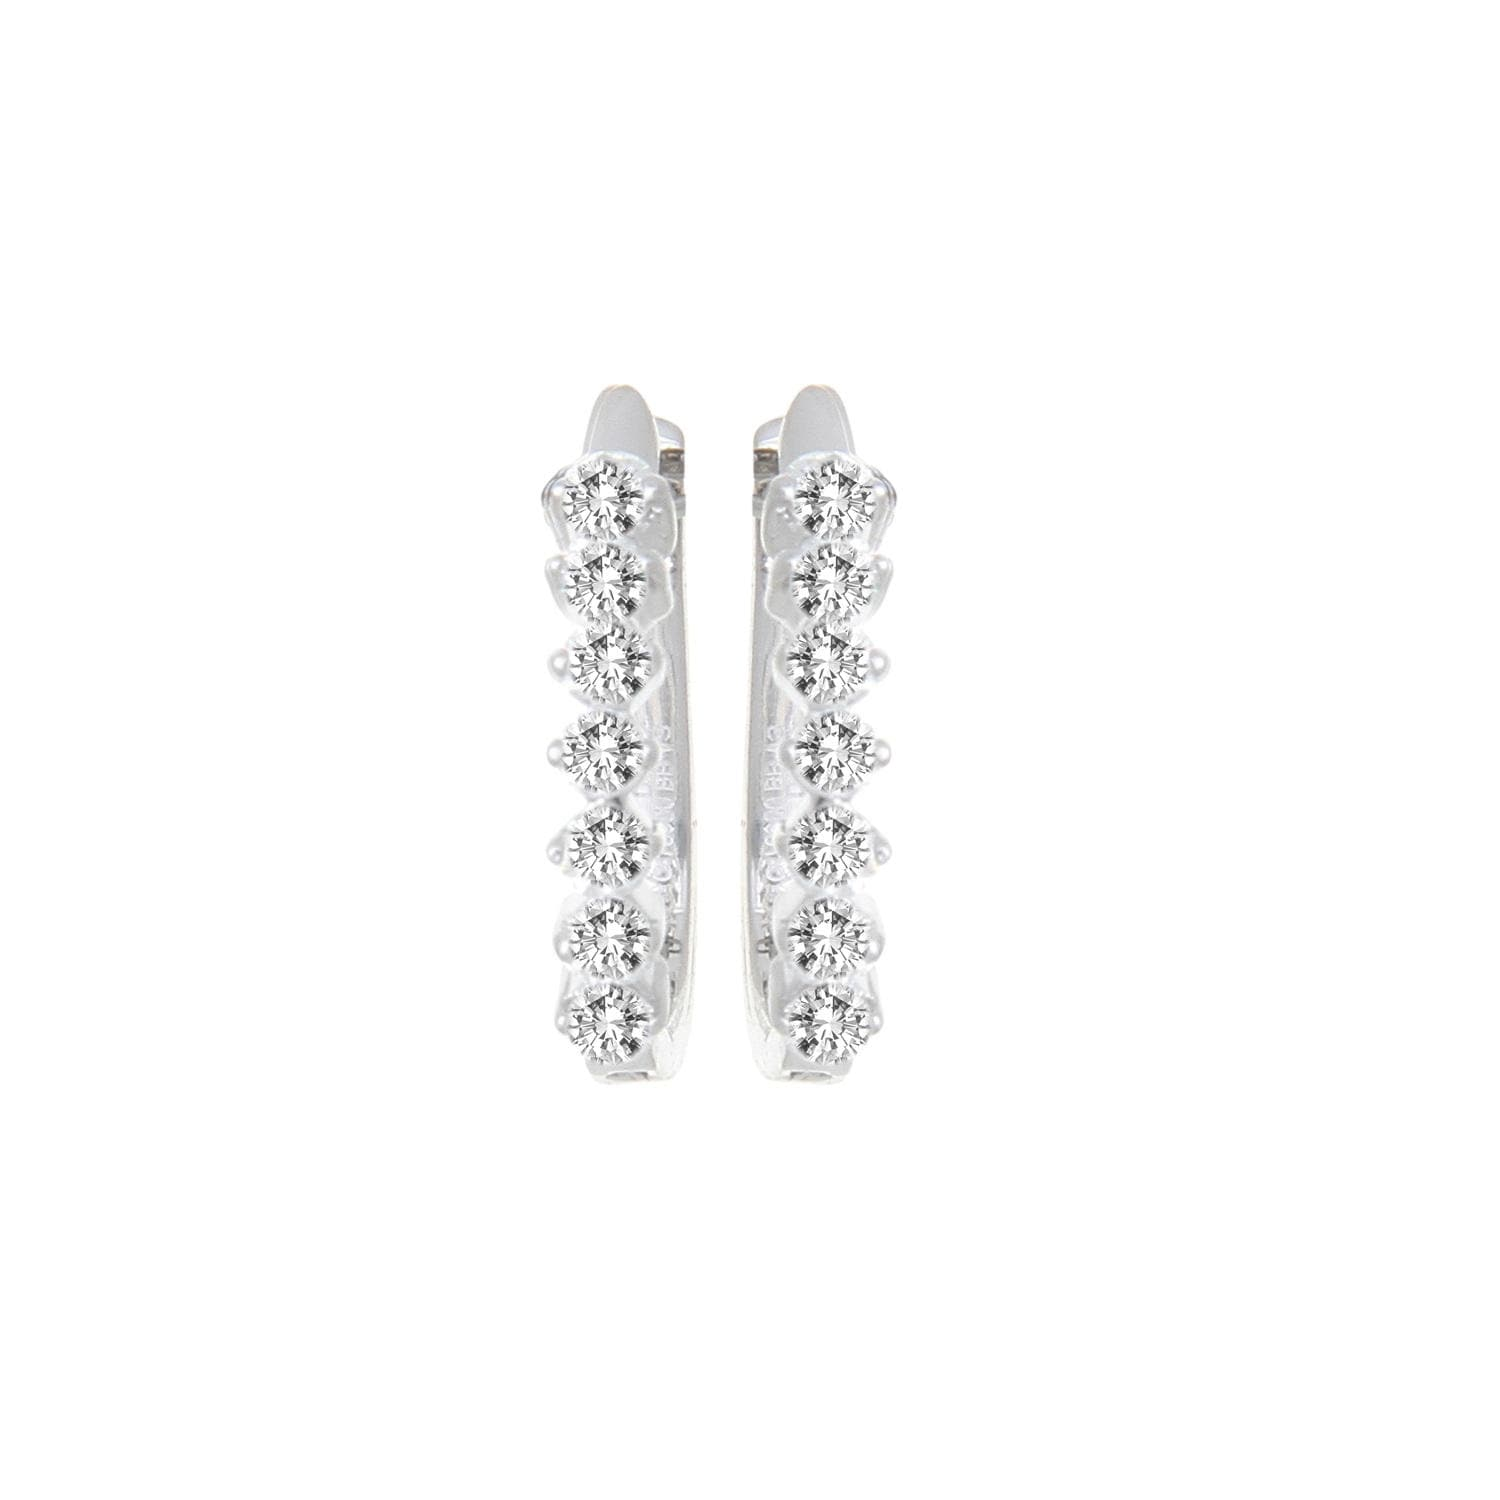 platinum jewellery eight with carat in earrings en jafo studs diamond prongs design collection